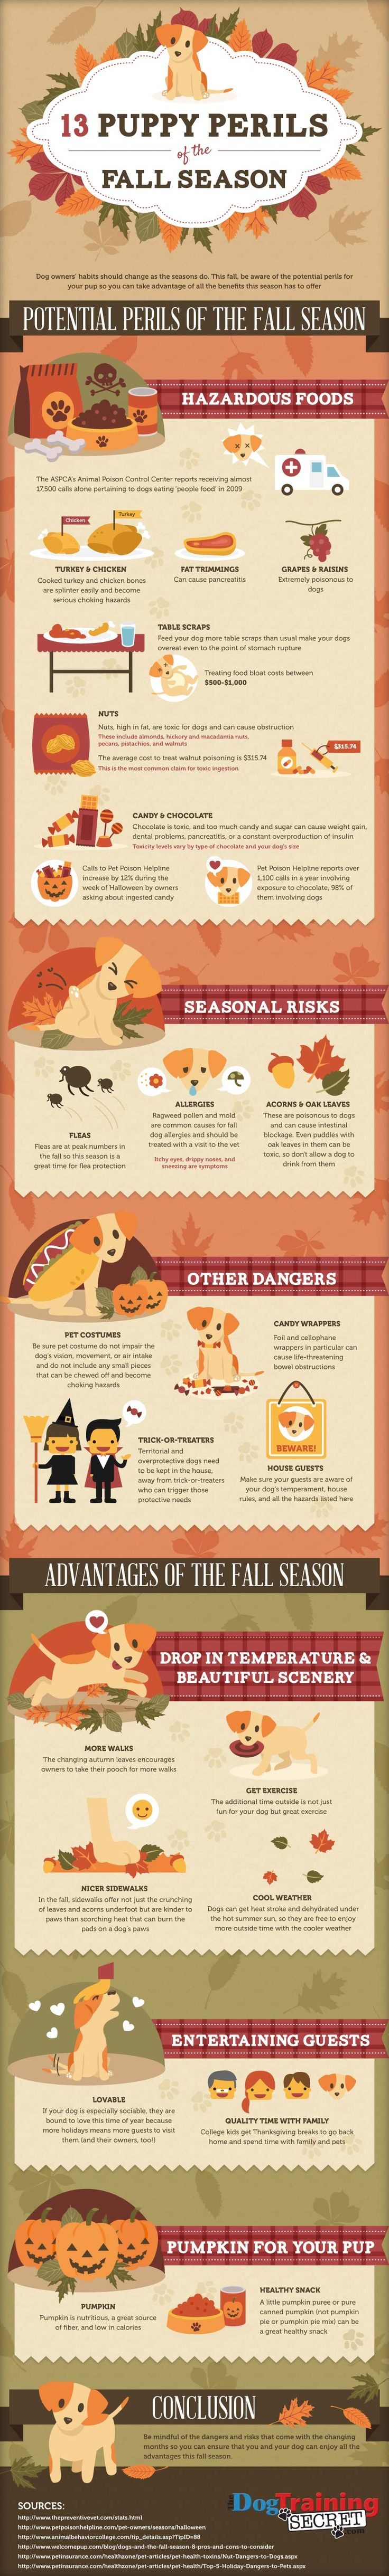 Puppy Care Tips in Fall : Fall season hides dangers and pitfalls for your little but also benefits that your puppy can enjoy. Though fall has passed for good, you will find several tips that go for winter too.  > http://infographicsmania.com/puppy-care-tips-in-fall/?utm_source=Pinterest&utm_medium=ZAKKAS&utm_campaign=SNAP